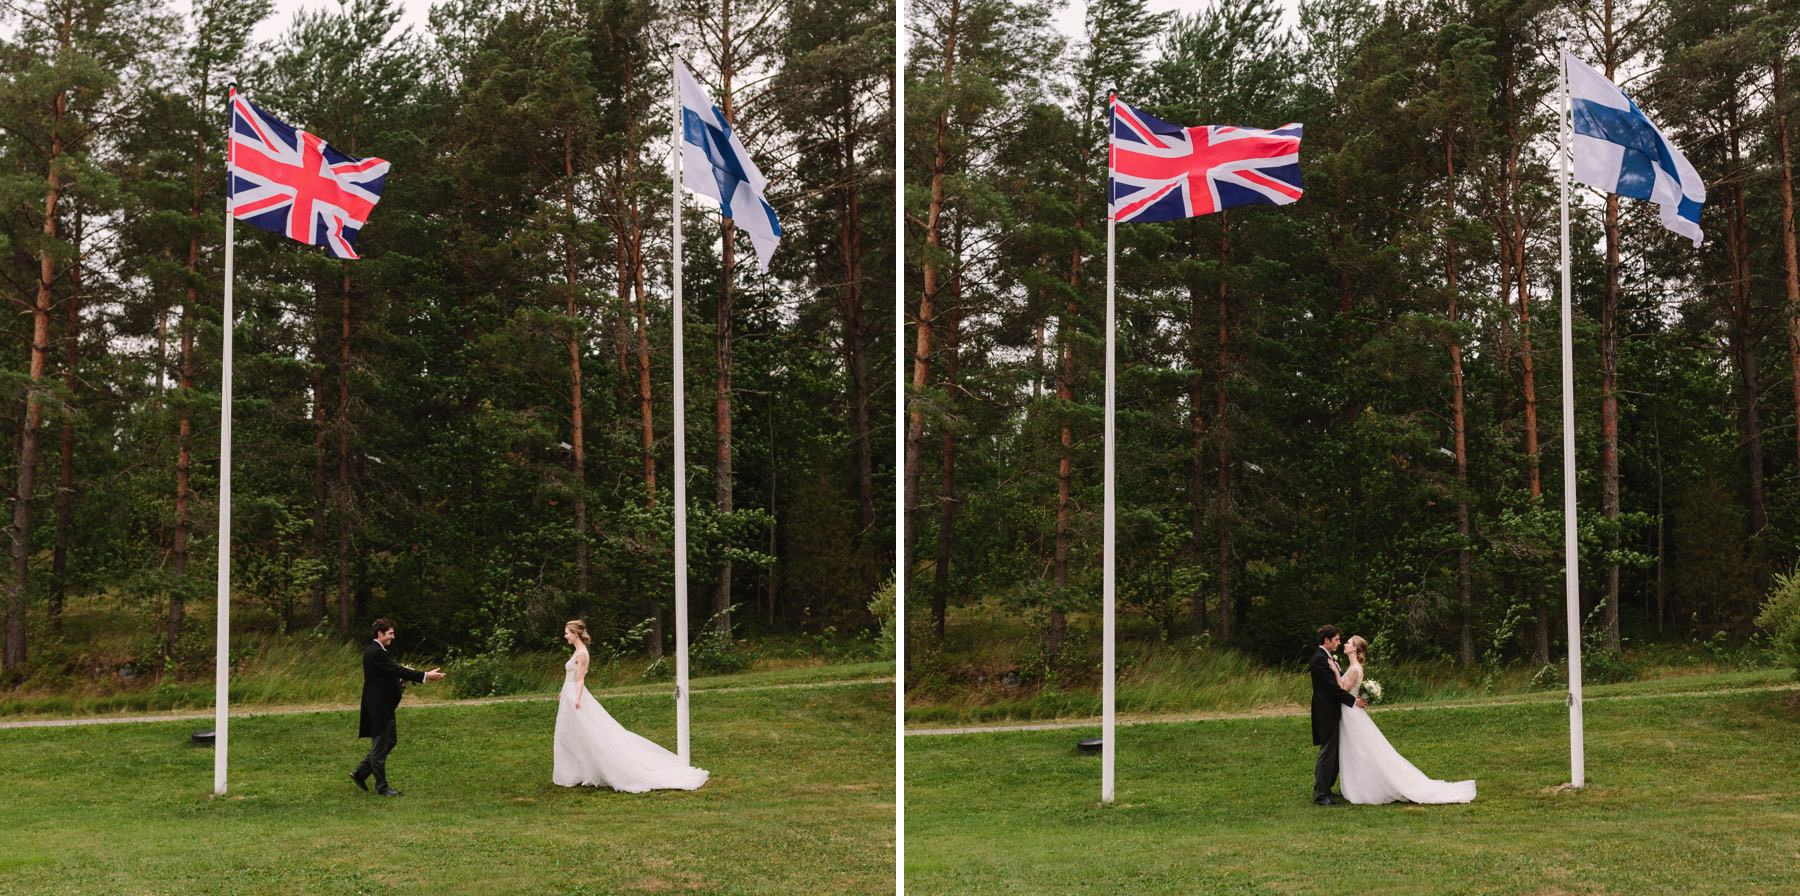 Finnish British wedding